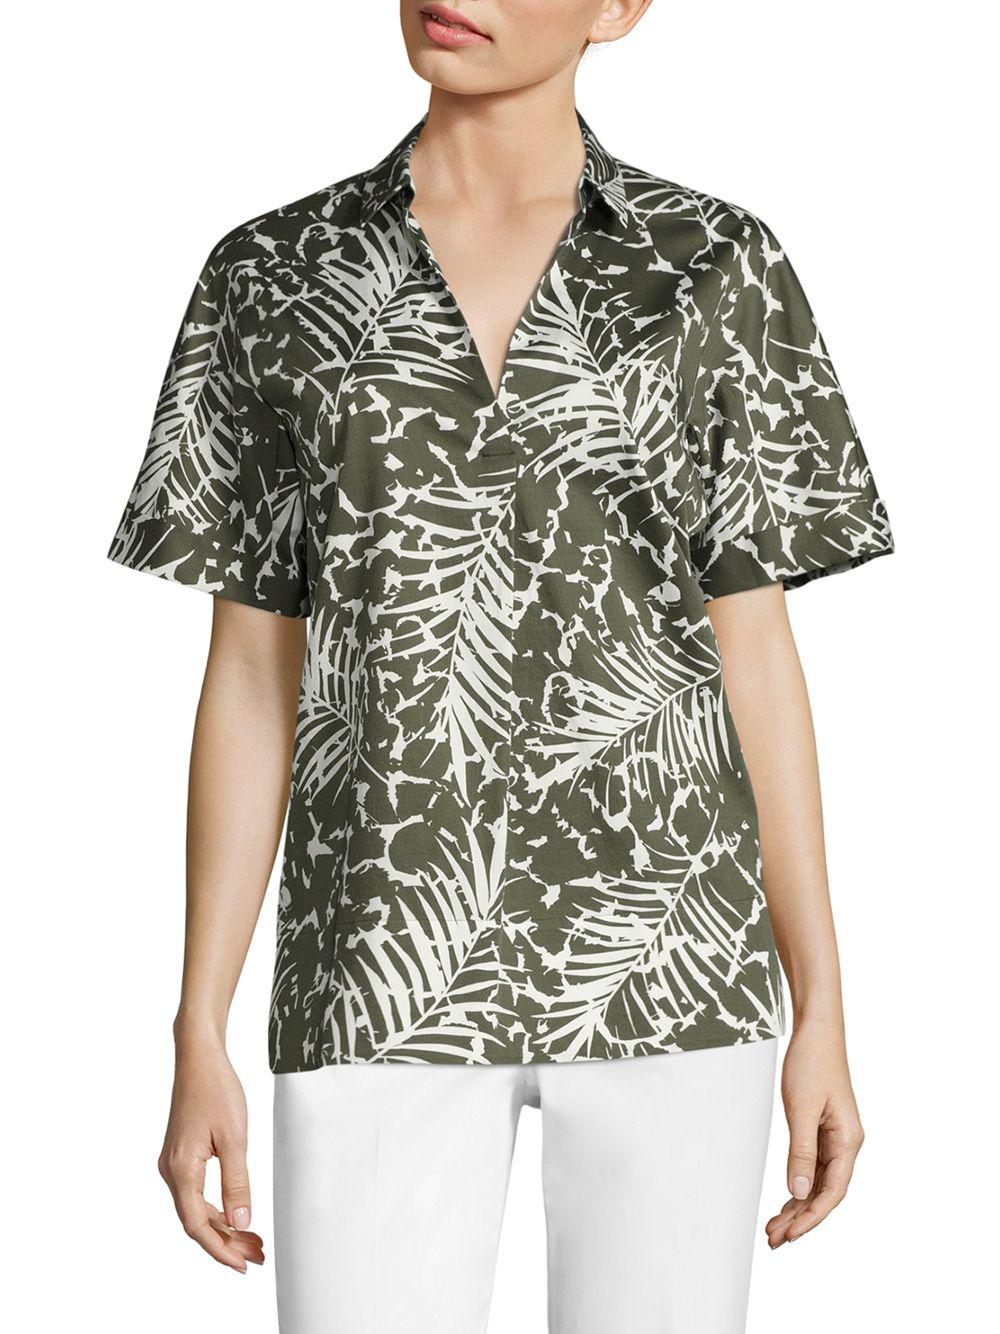 044aed9630e9d Lyst - Lafayette 148 New York Damon Palm-print Blouse in Green ...